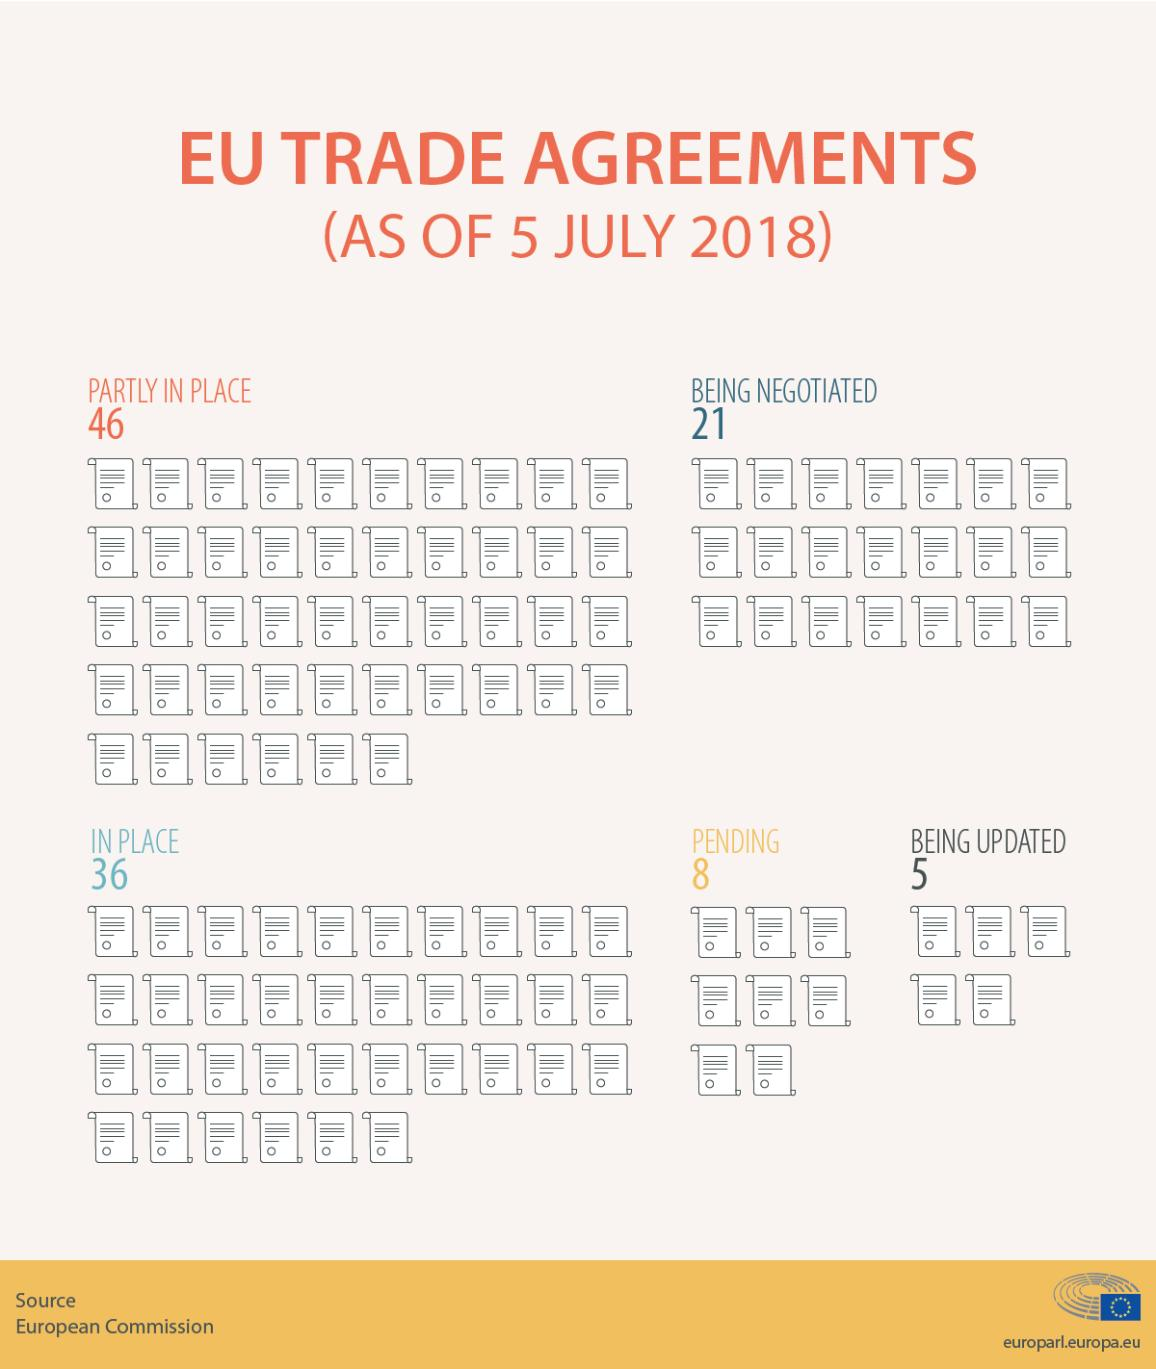 infographic on EU trade agreements in 2018